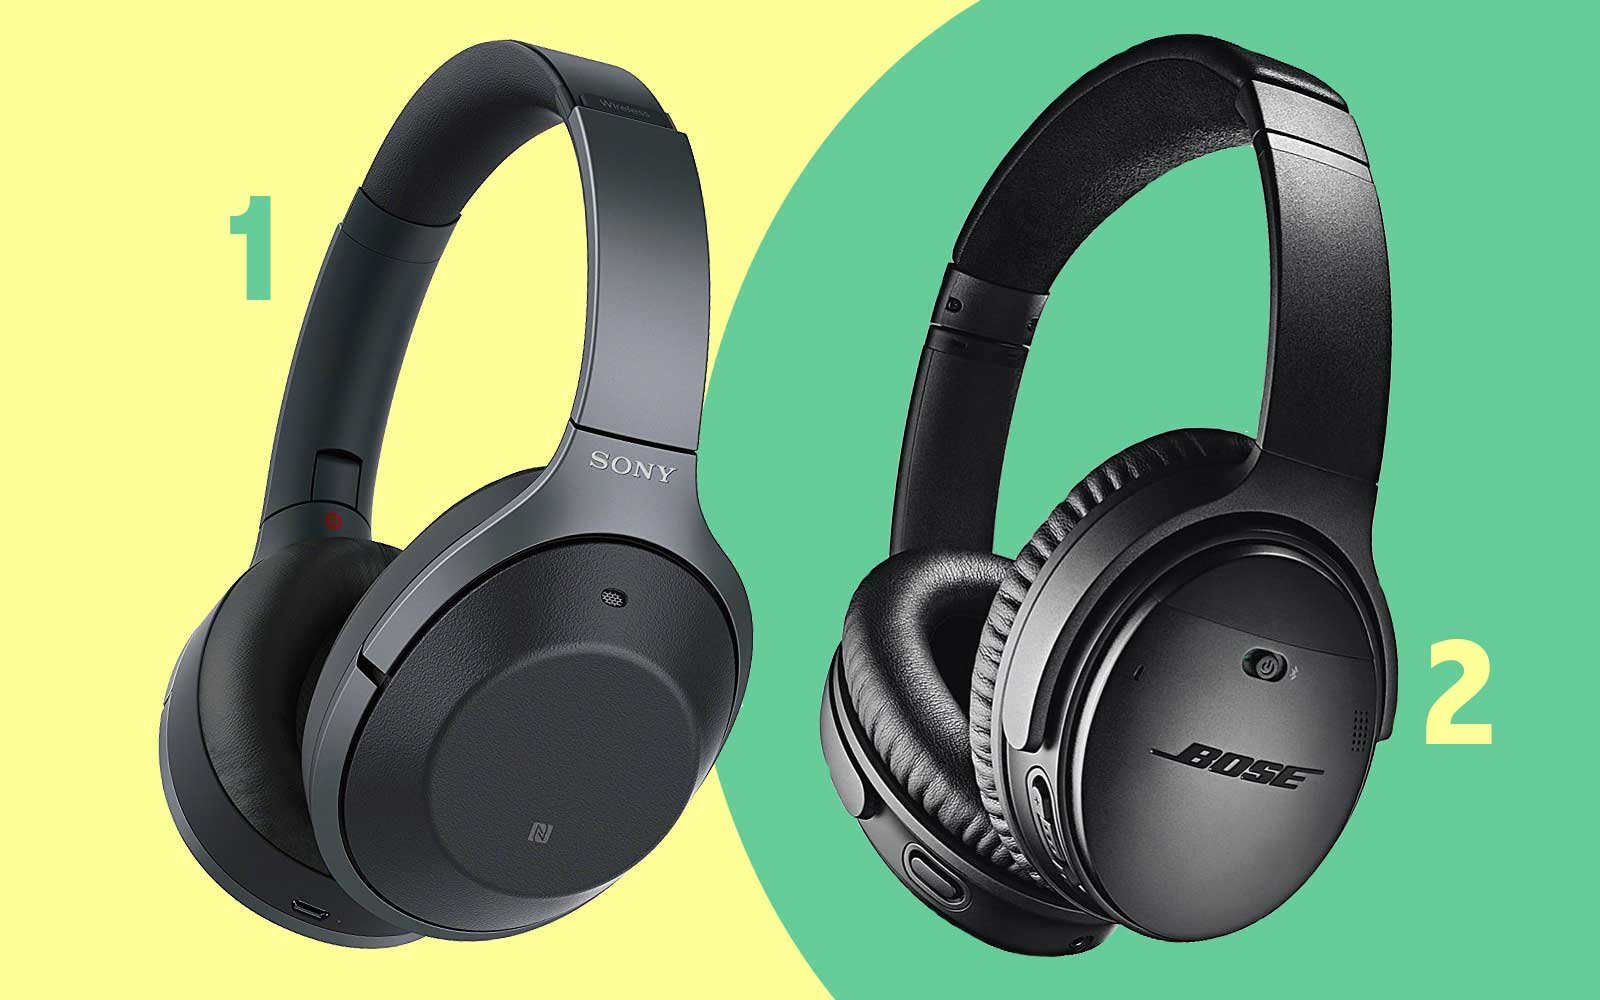 817ba7d8331 The Best Noise-cancelling Headphones for Travel | Travel + Leisure